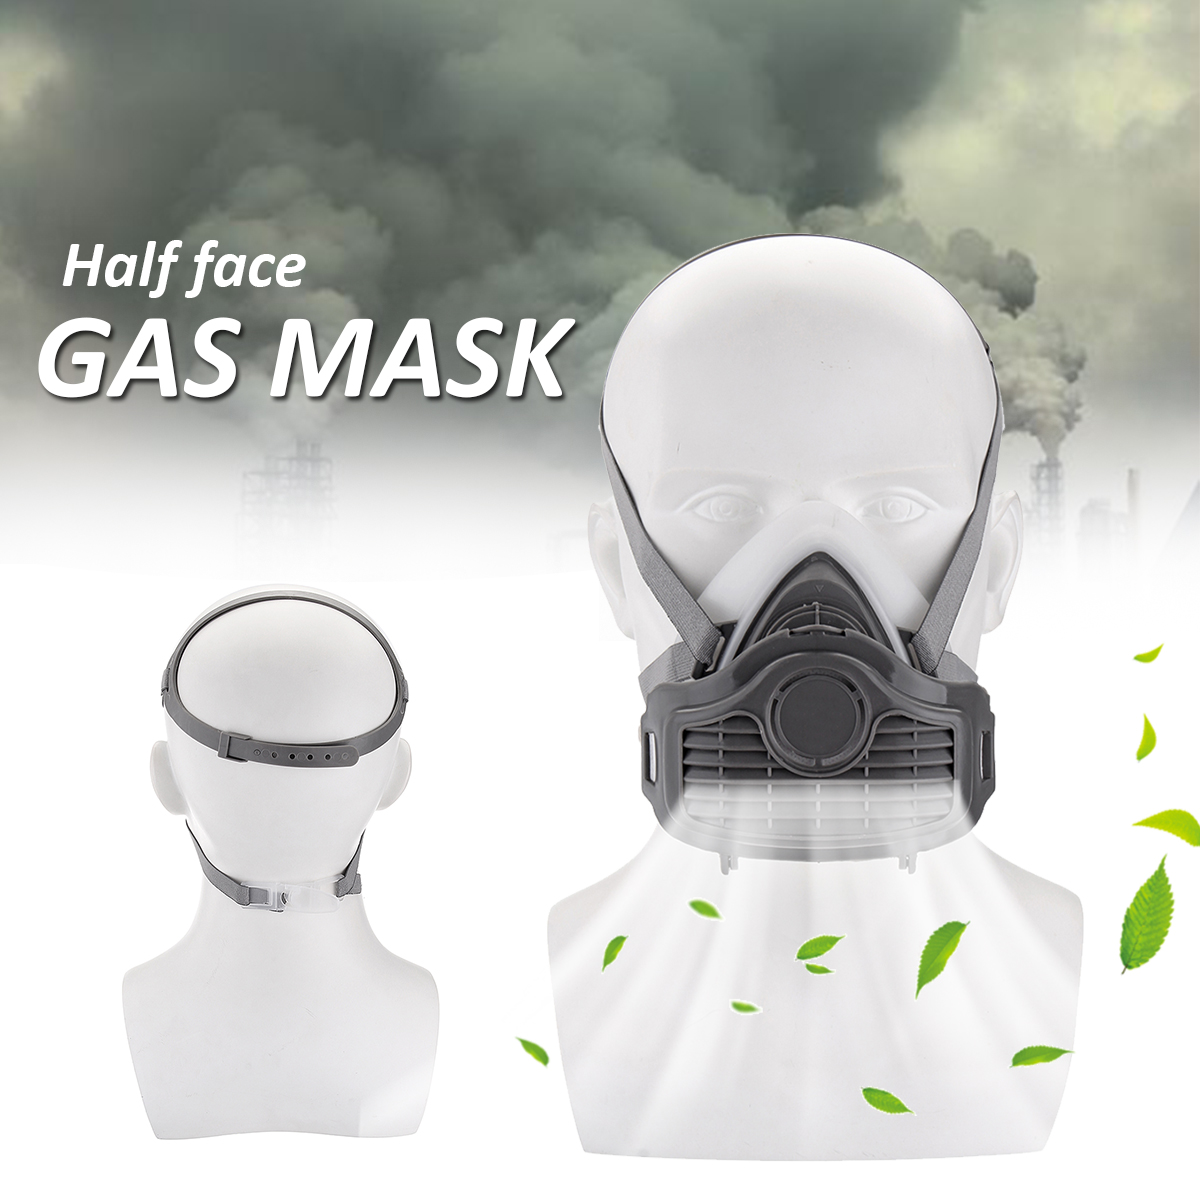 Safety Respiratory Gas Mask Half Face Filter Anti-Dust Smoke Protective Mask for Painting Spraying Industrial Pesticide Chemical safety respiratory gas mask half face filter anti dust smoke protective mask for painting spraying industrial pesticide chemical